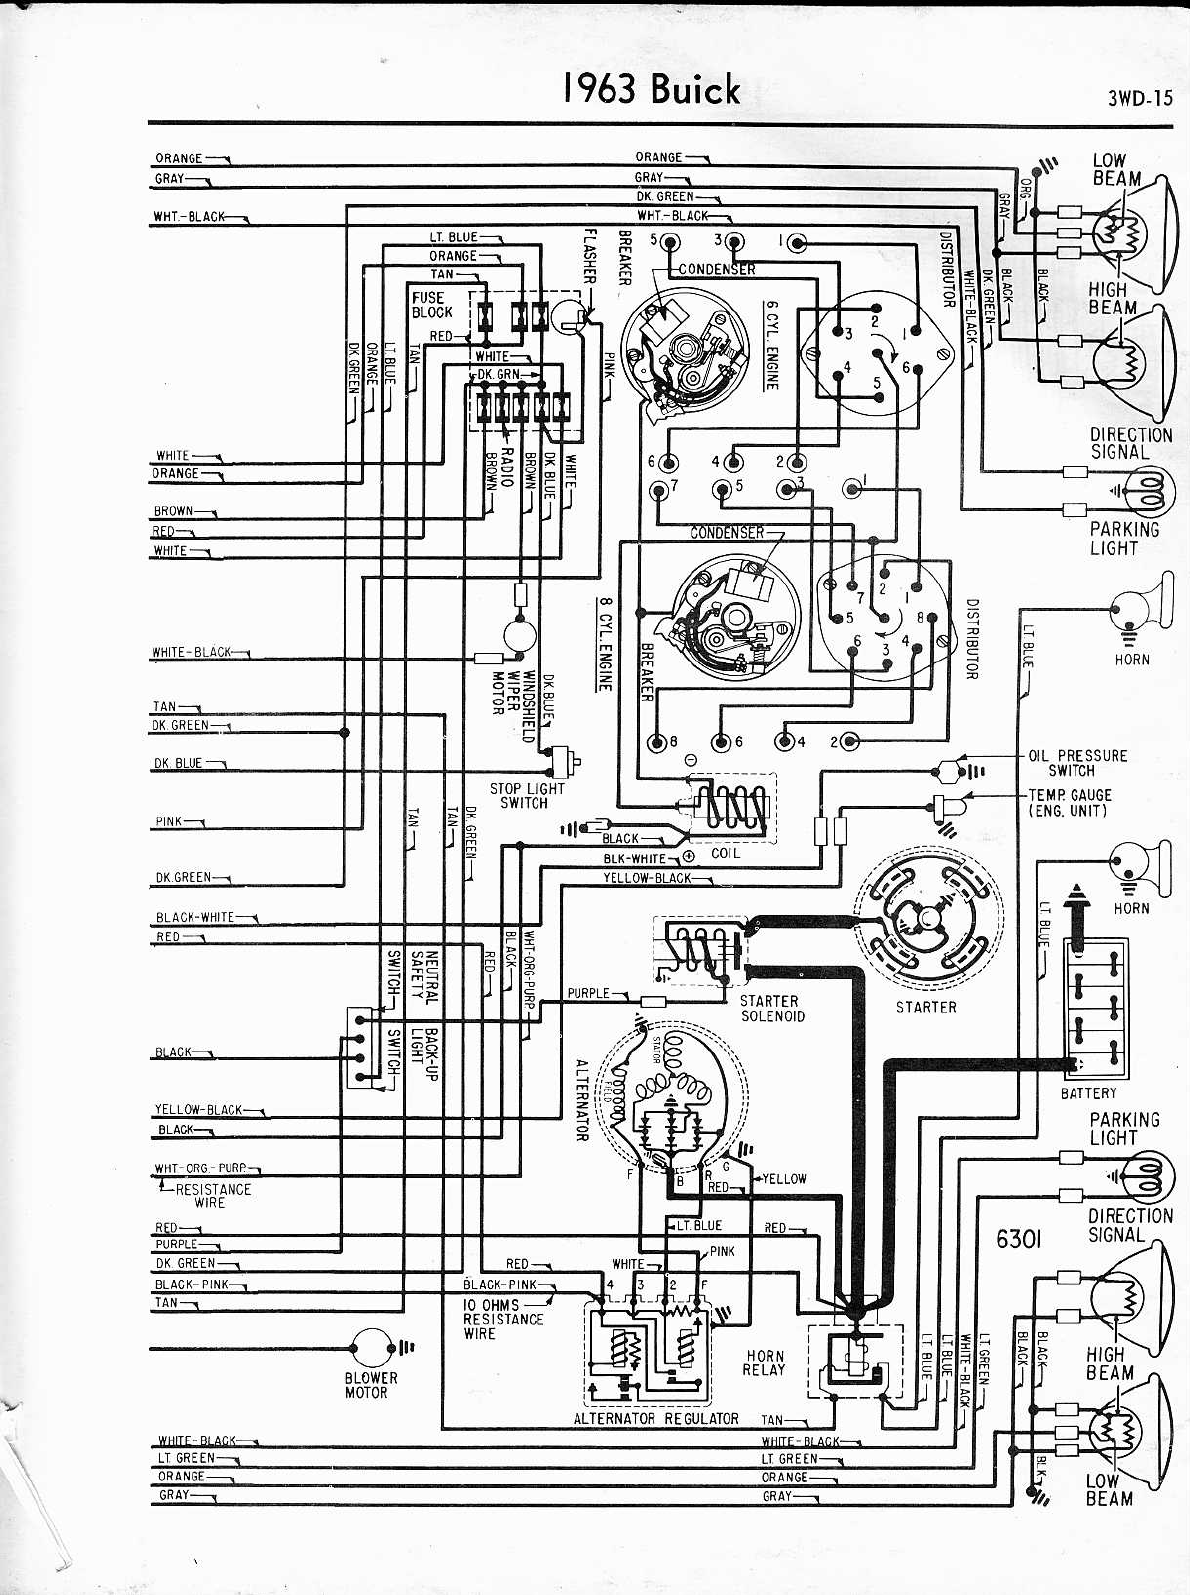 4 Cylinder Wisconsin Engine Wiring Diagram Libraries Thd For Librarybuick Skylark 1963 1965 Misc Documents Diagrams Pdf